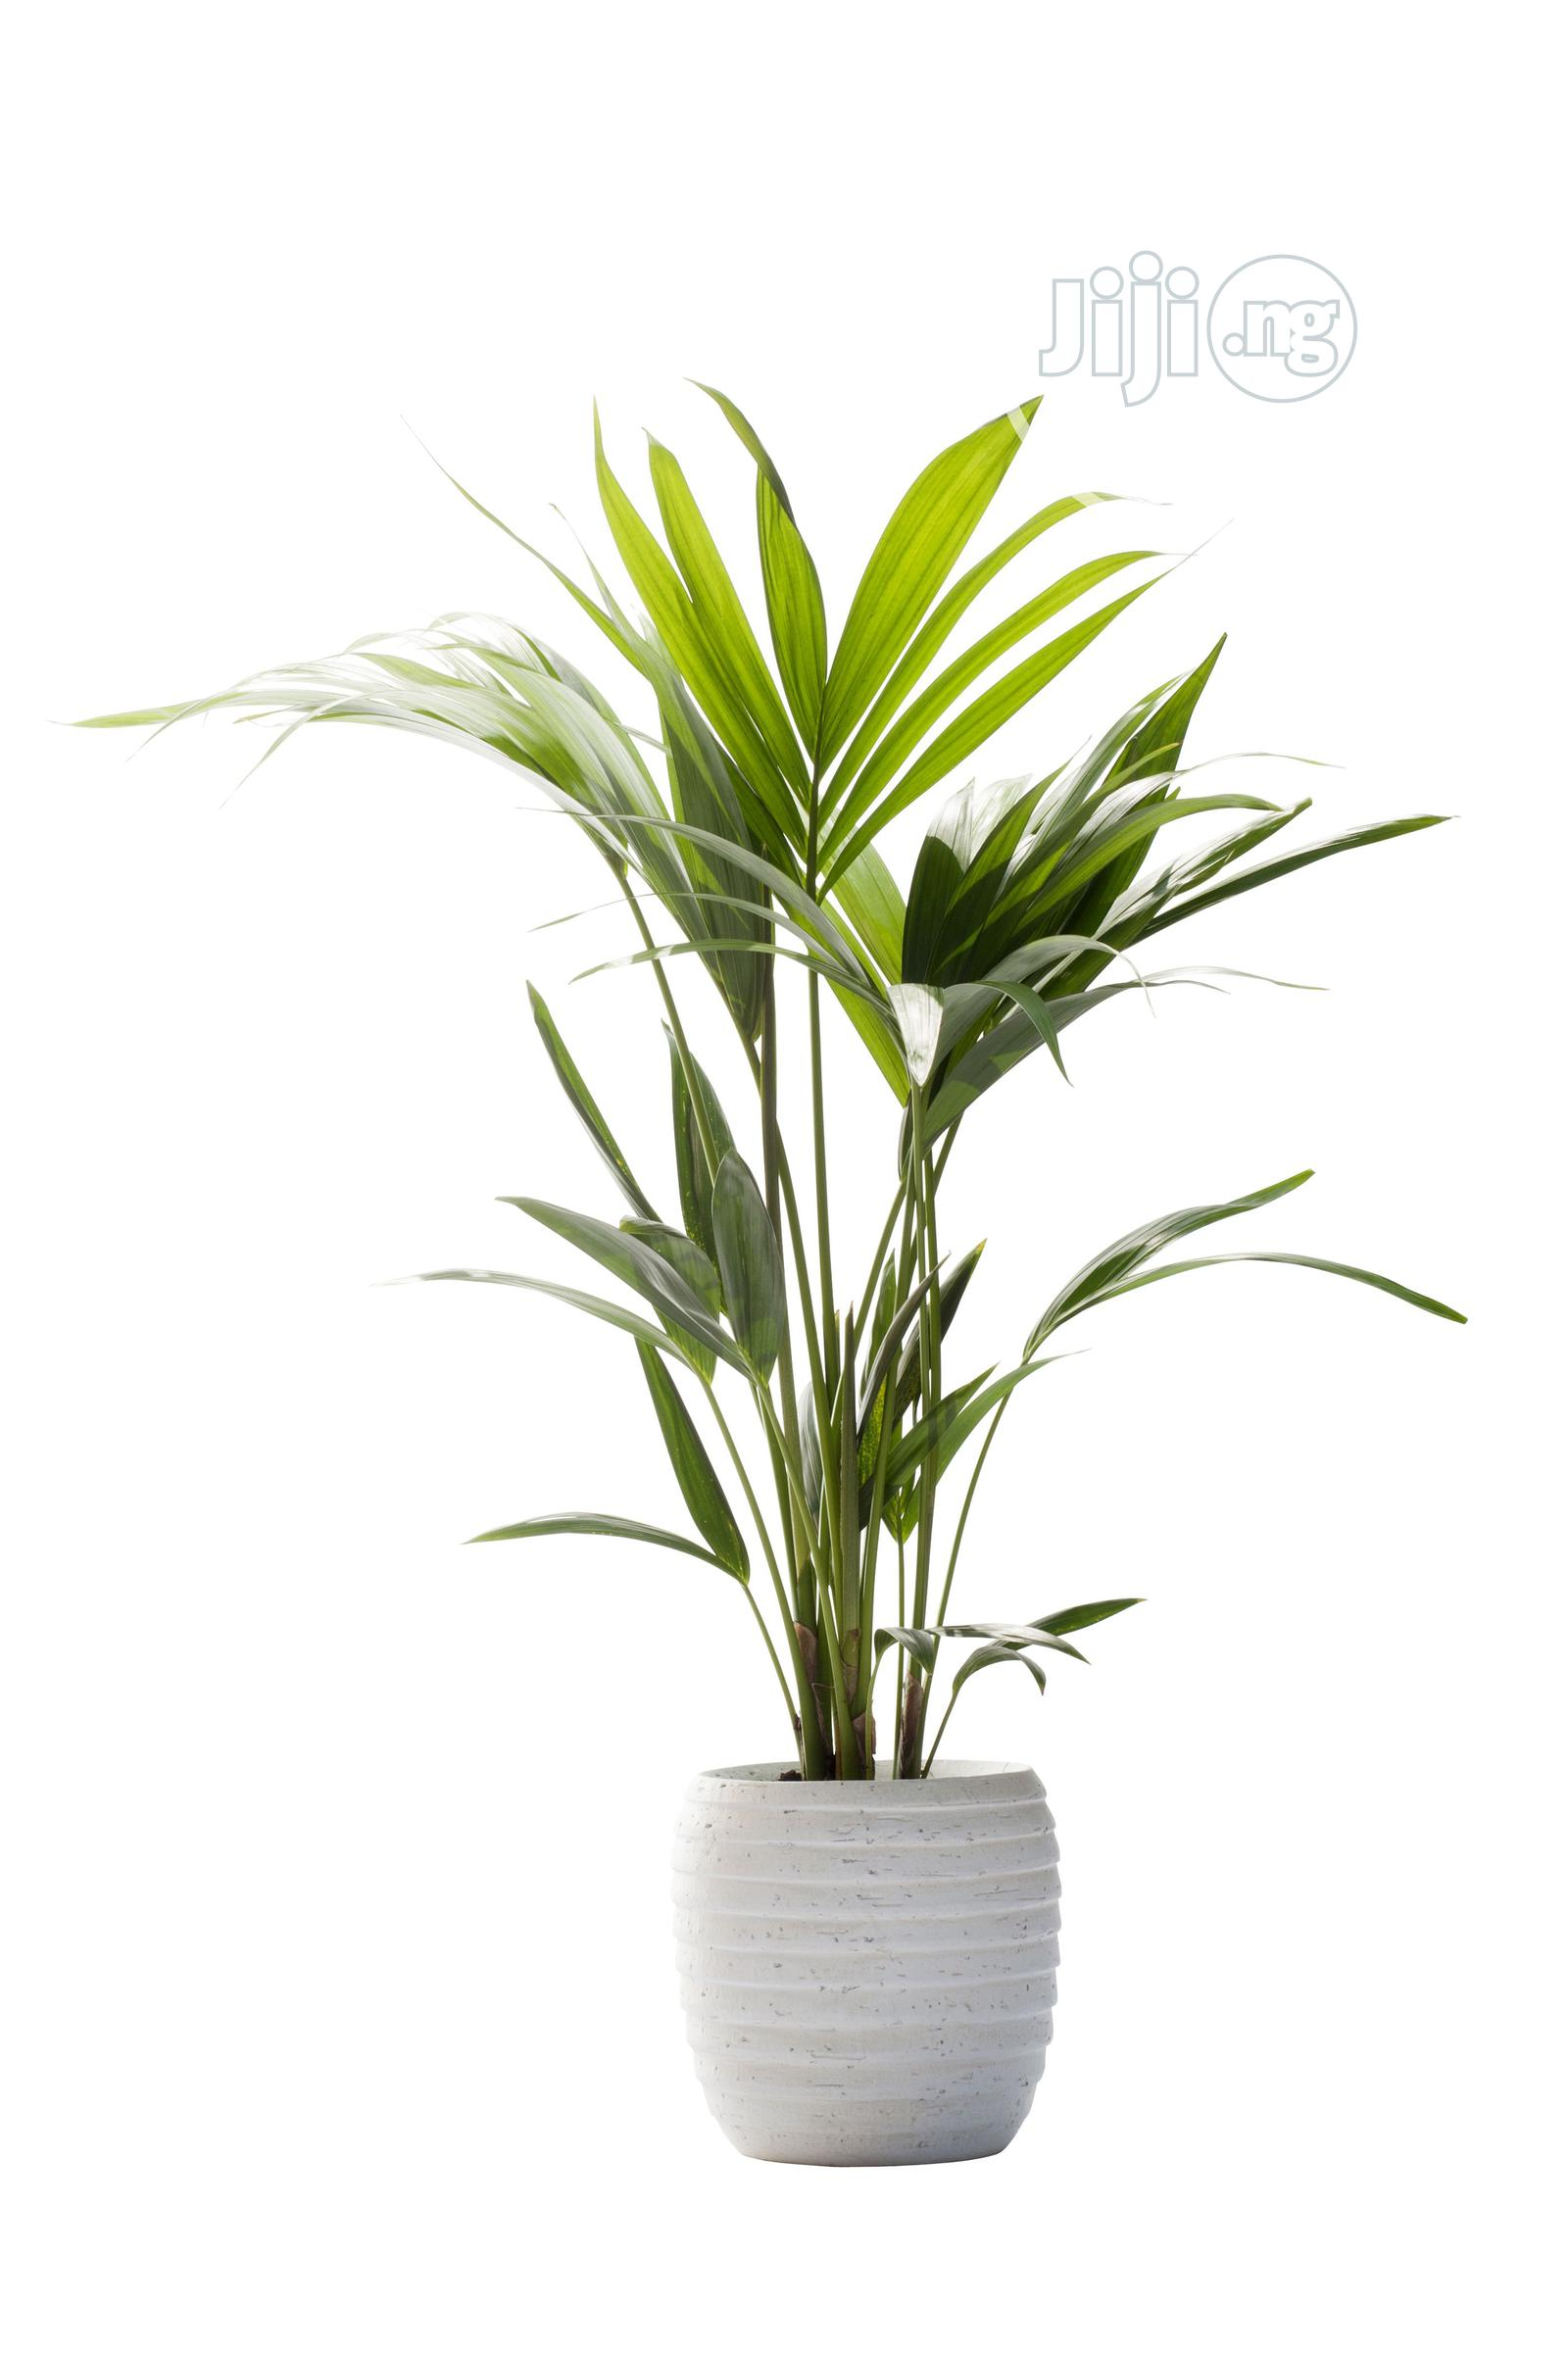 Decorative Faux Plant Home Office Usage In Ikeja Garden Bethelmendels Artificial Grass Jiji Ng